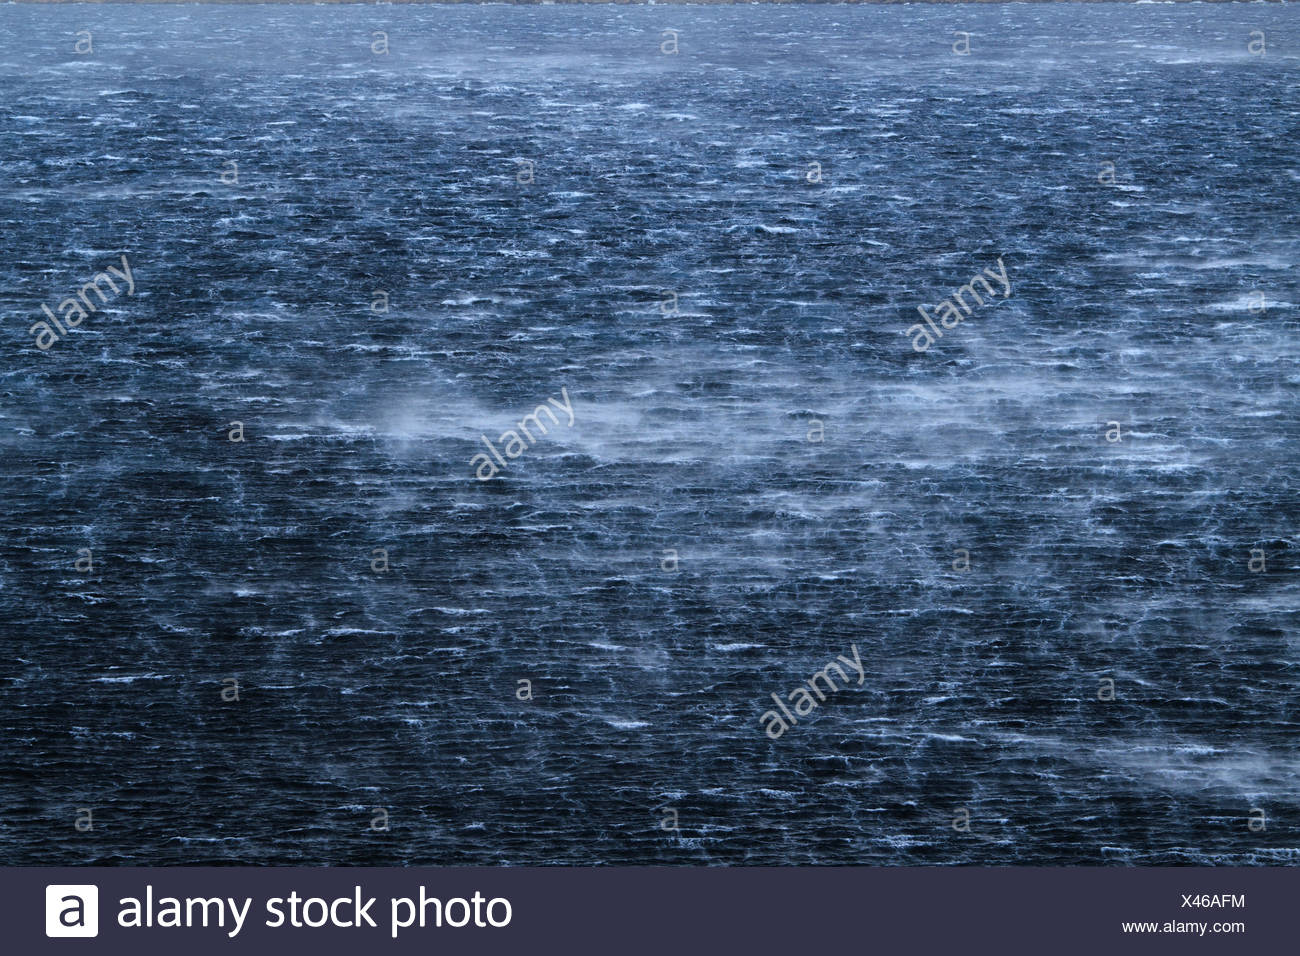 Raging sea with furious waves and fierce wind - Stock Image